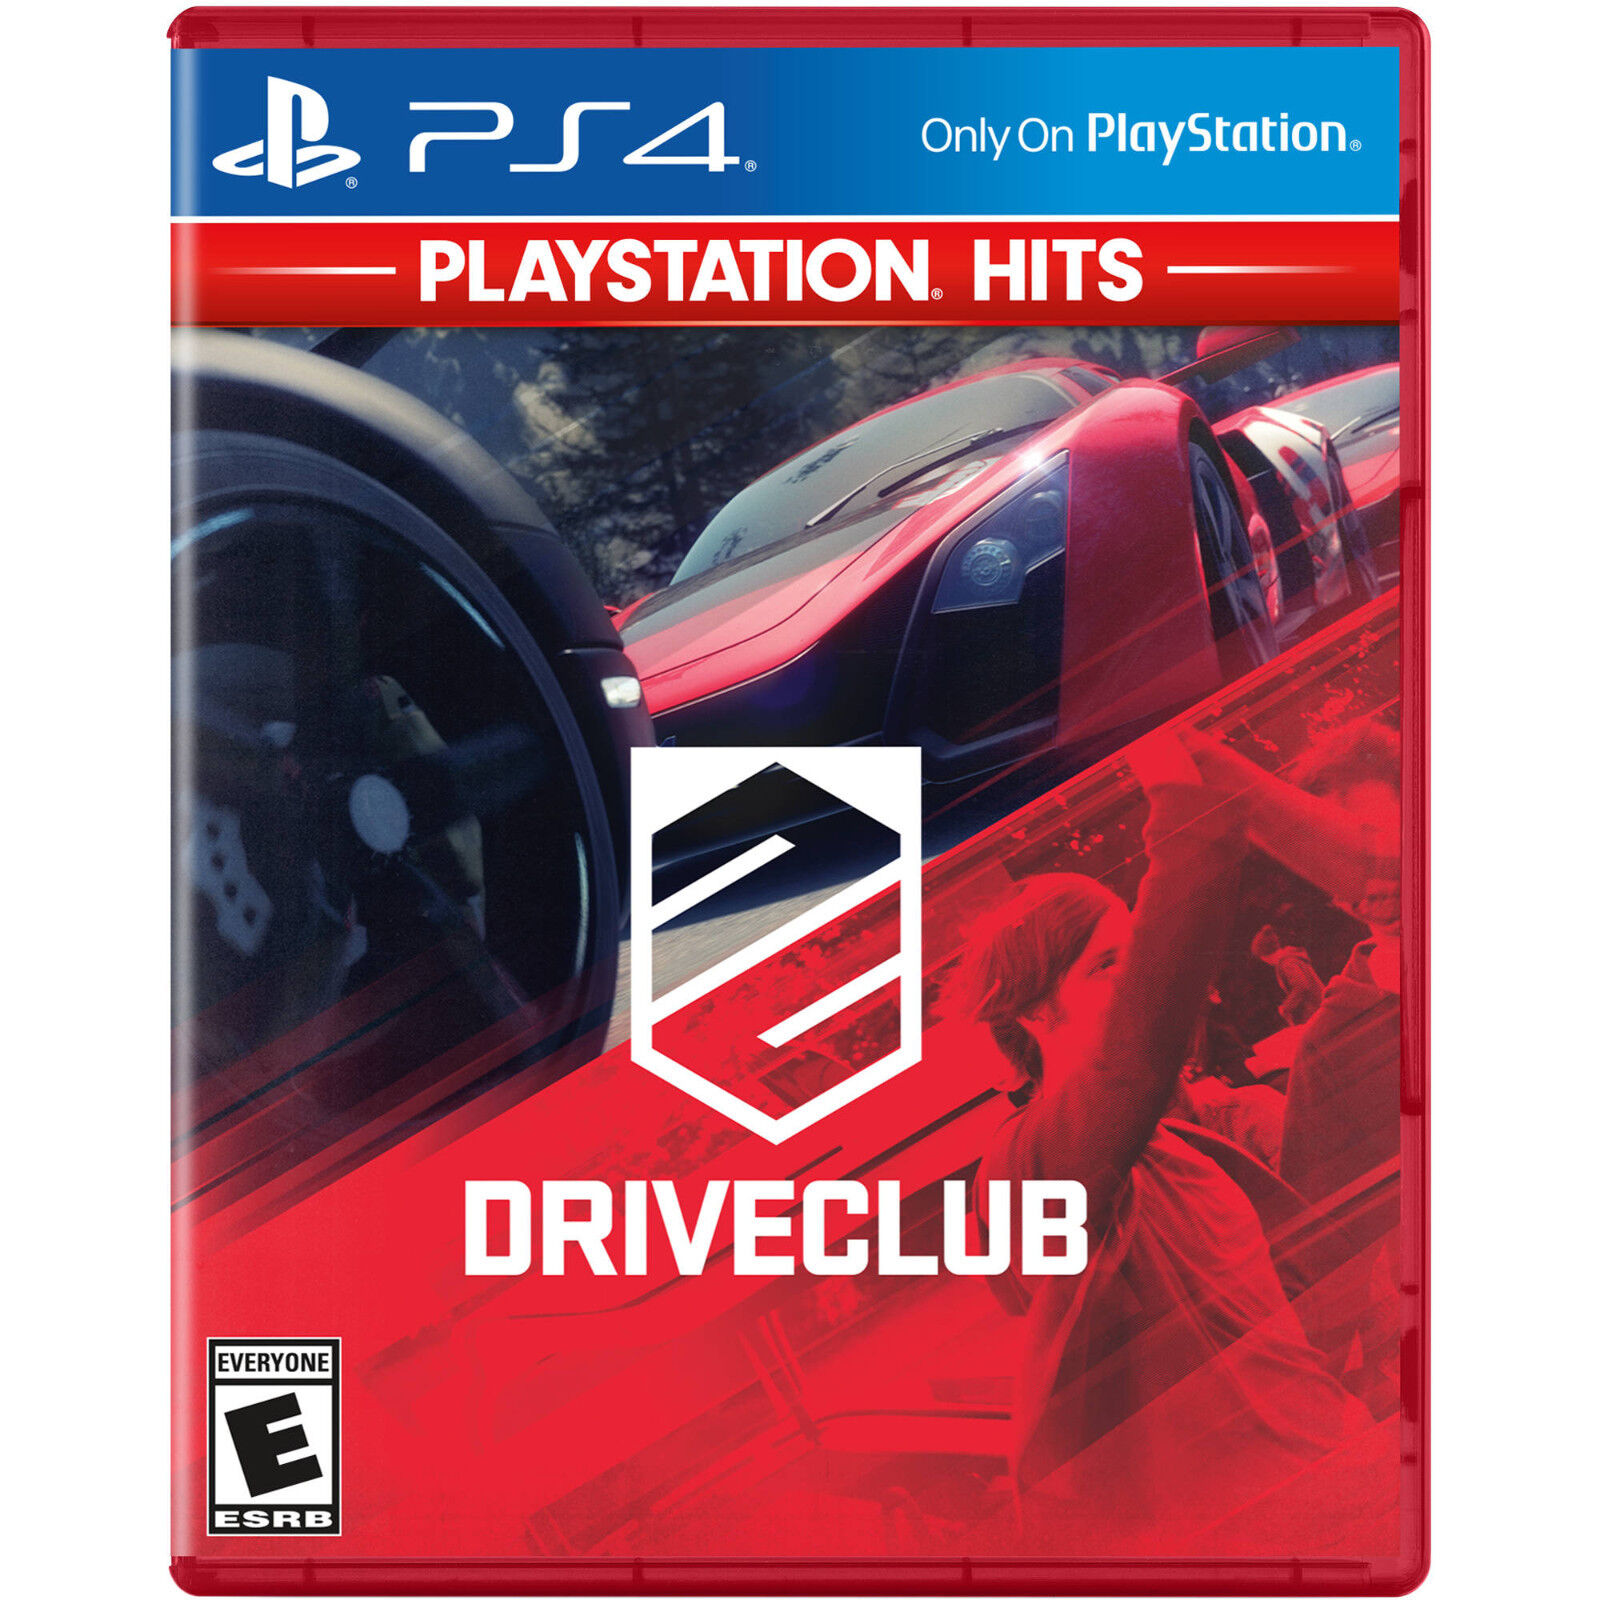 Drive Club DriveClub Sony Ps4 Sony Playstation 4 hits